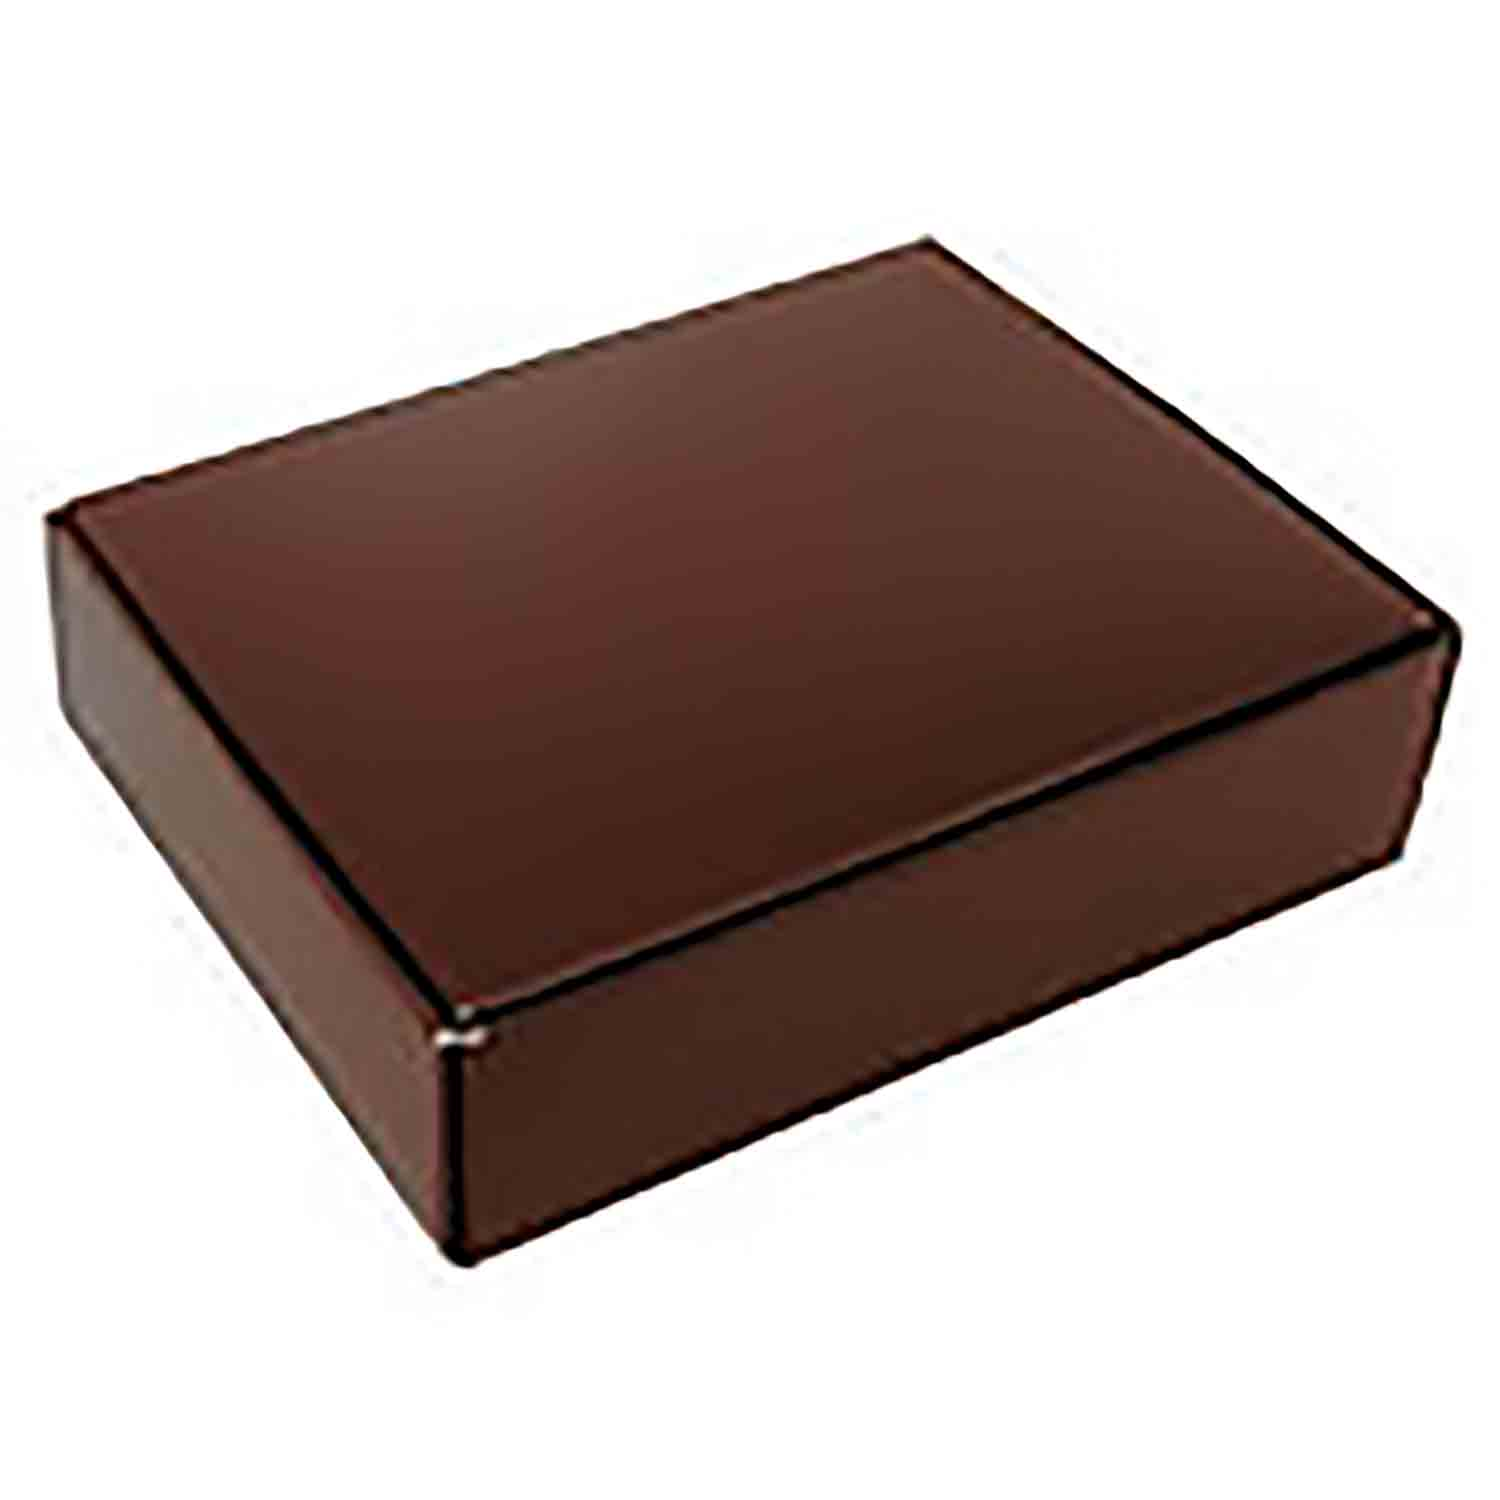 1/2 lb. Brown Candy Box